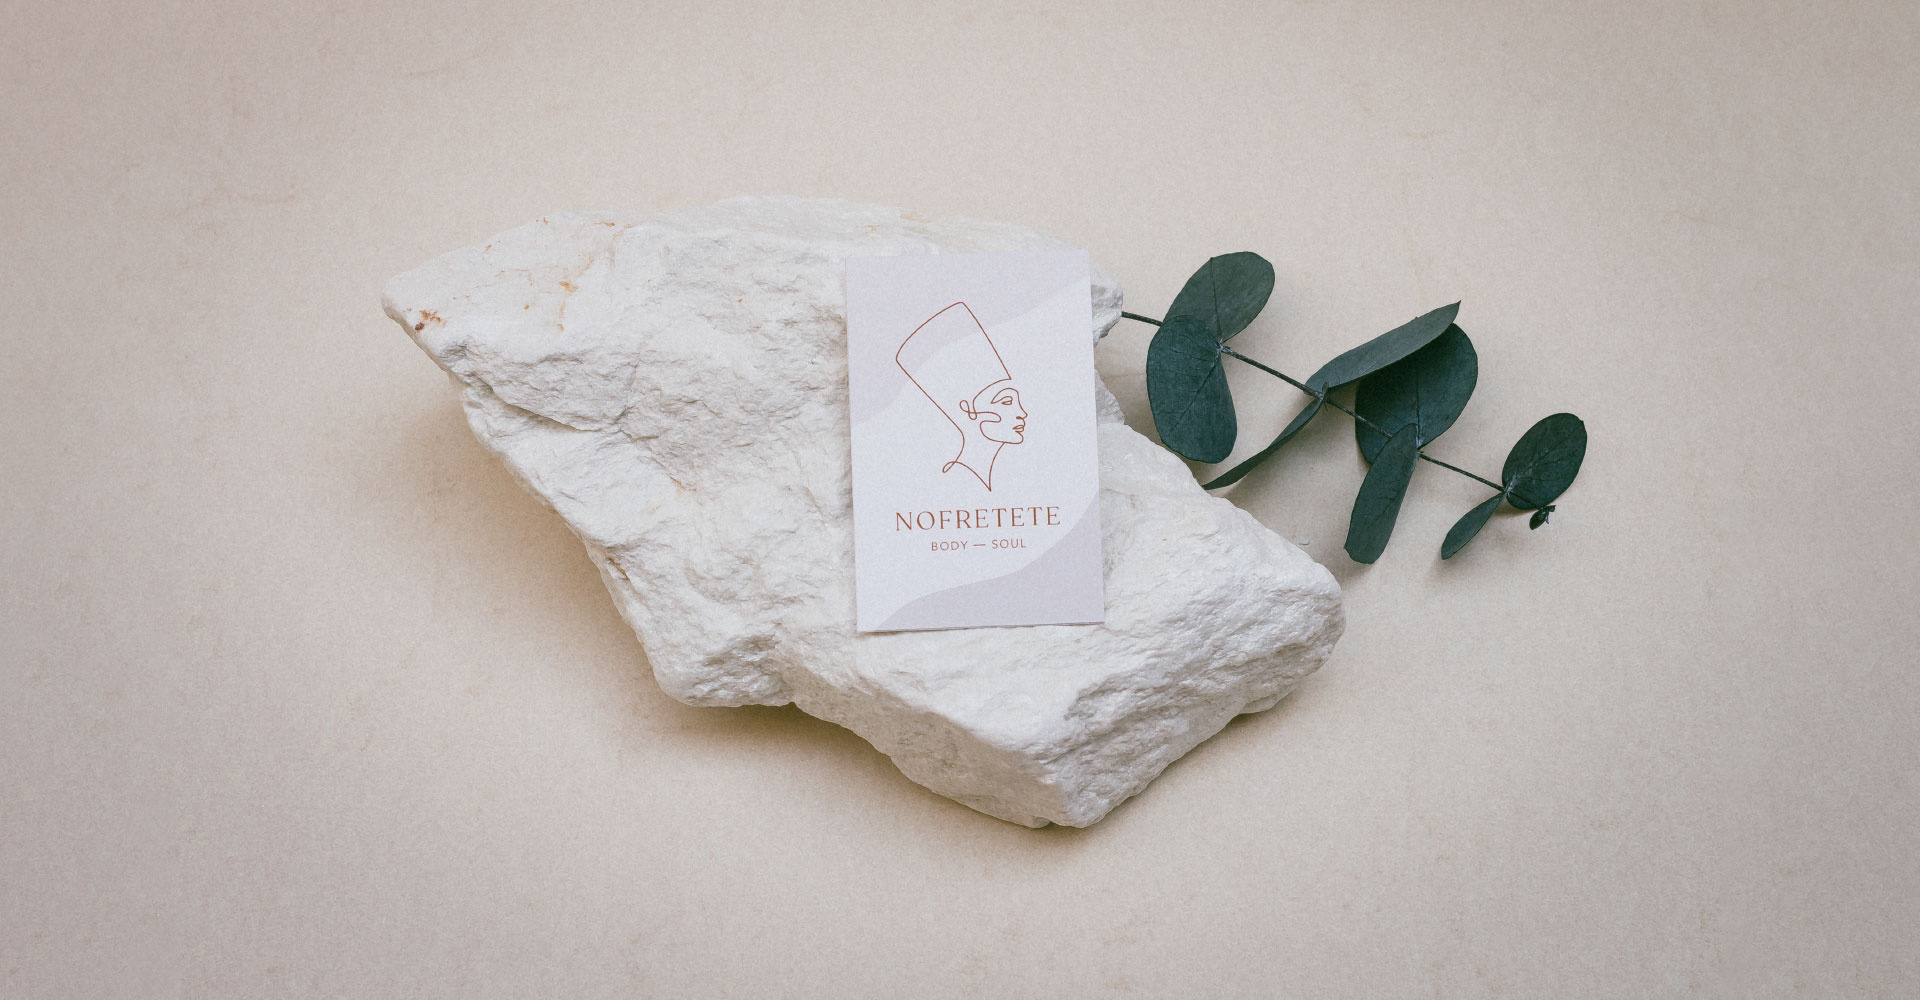 Nofretete Beauty Business Card Design